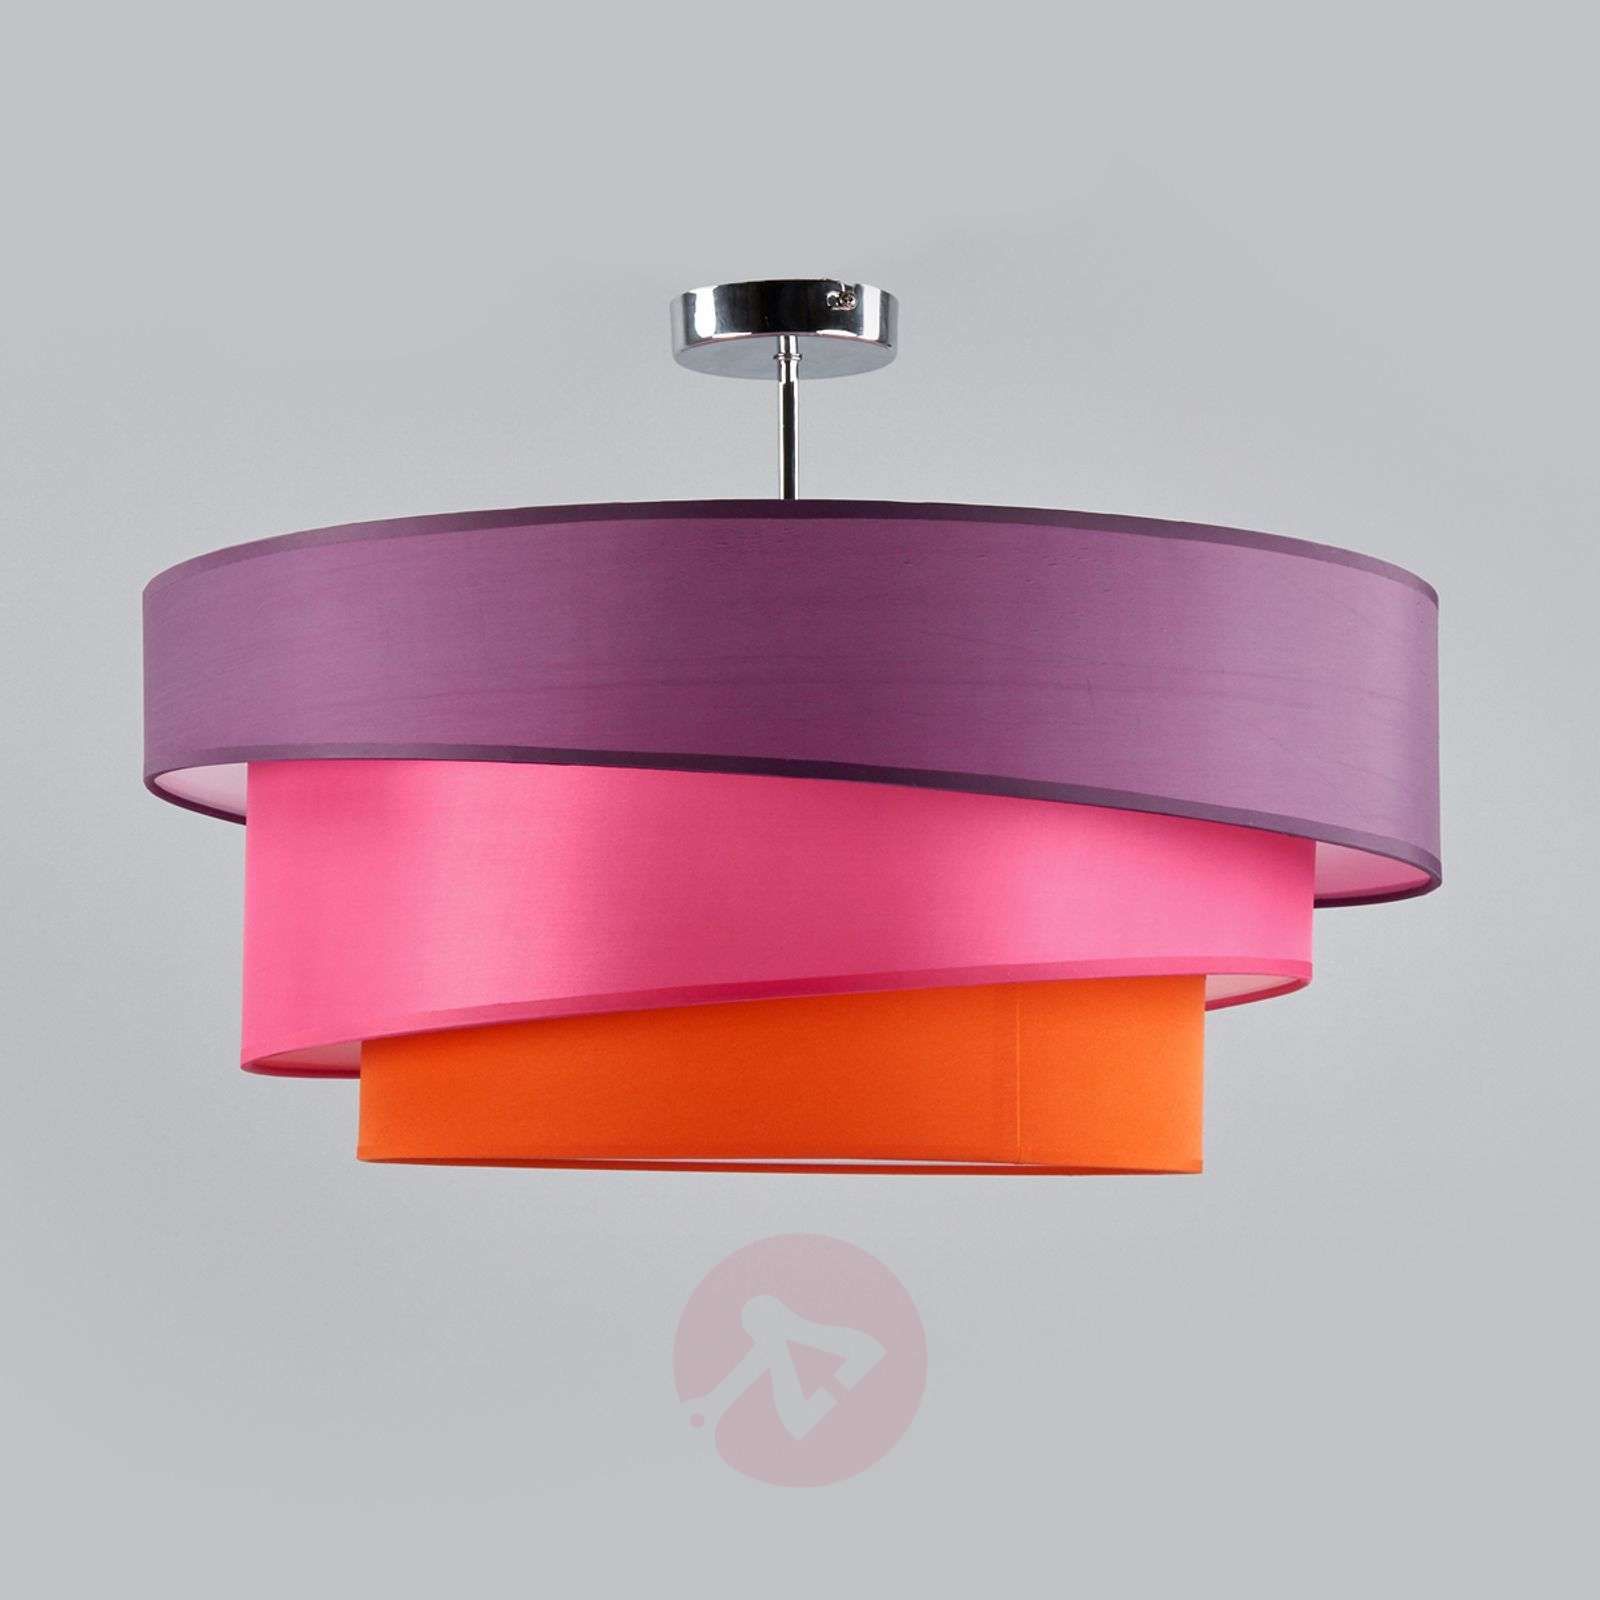 Three-coloured ceiling light Melia, violet and pink-9639035-01